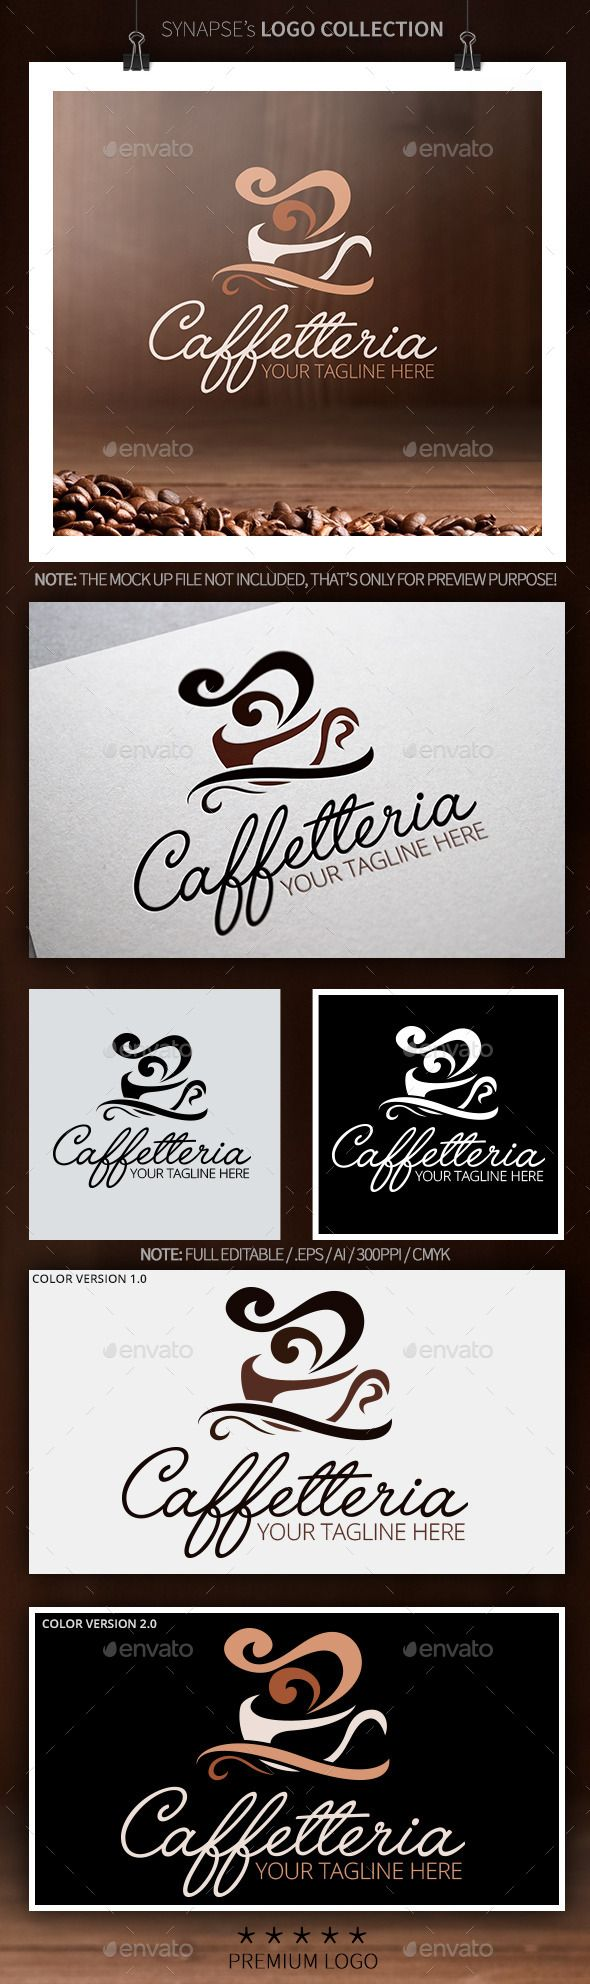 Caffetteria / Coffee Logo Design — Vector EPS #solutions #unique • Available here → https://graphicriver.net/item/caffetteria-coffee-logo-design/10108911?ref=pxcr